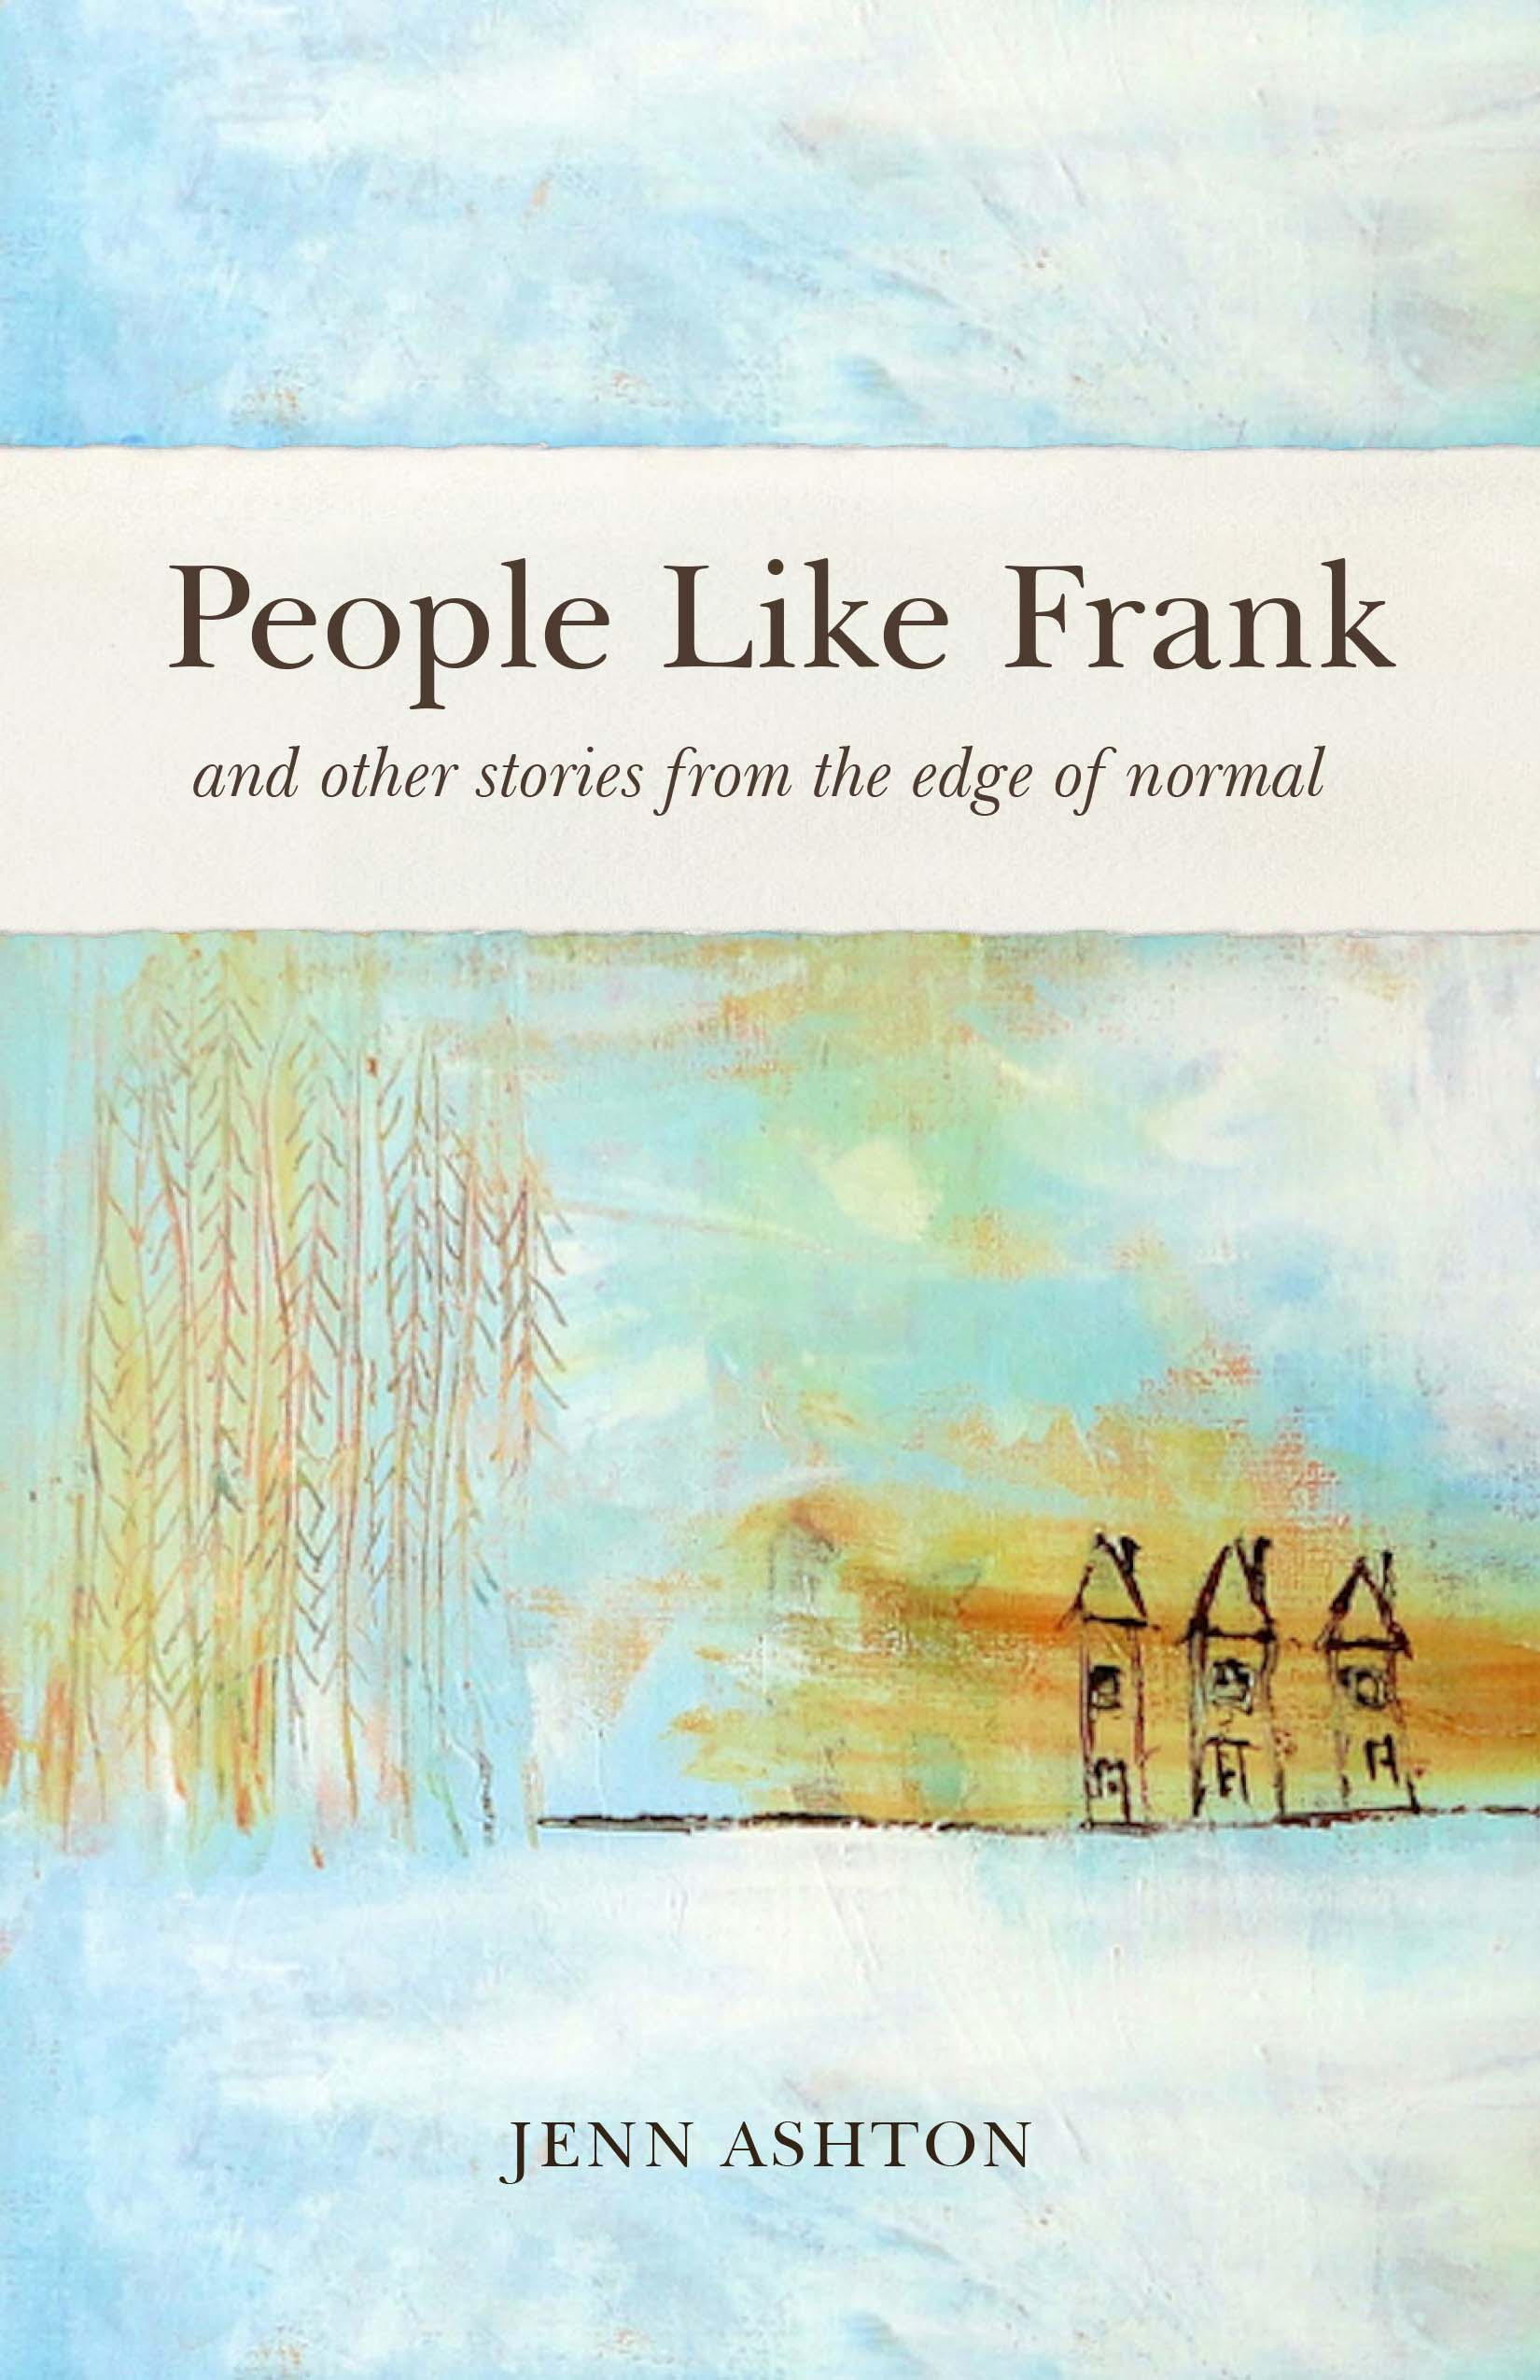 People Like Frank and Other Stories from the Edge of Normal